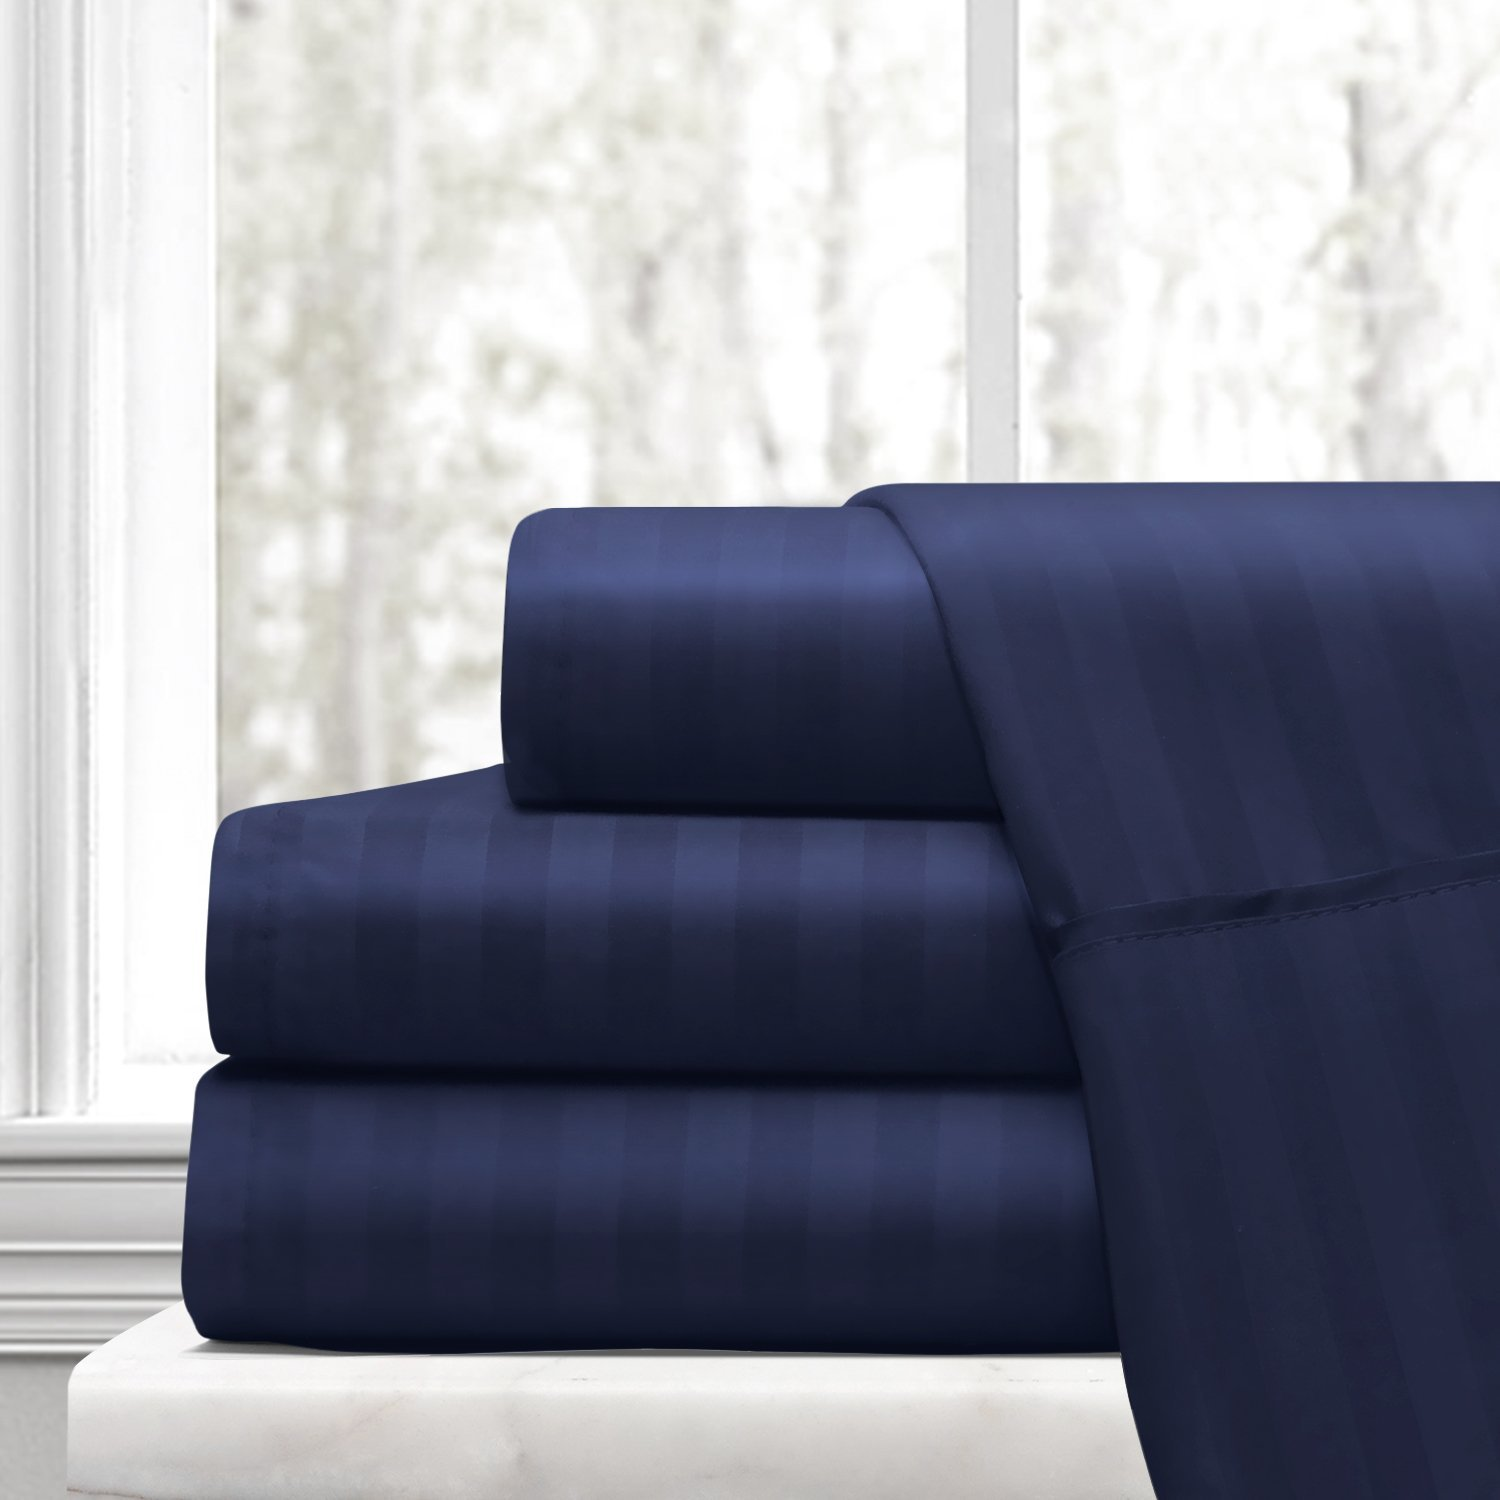 Beckham Hotel Collection Luxury Soft Brushed Microfiber 4-Piece Striped Sheet Set - Hypoallergenic & Stain Resistant with Embossed Stripes -King - Navy